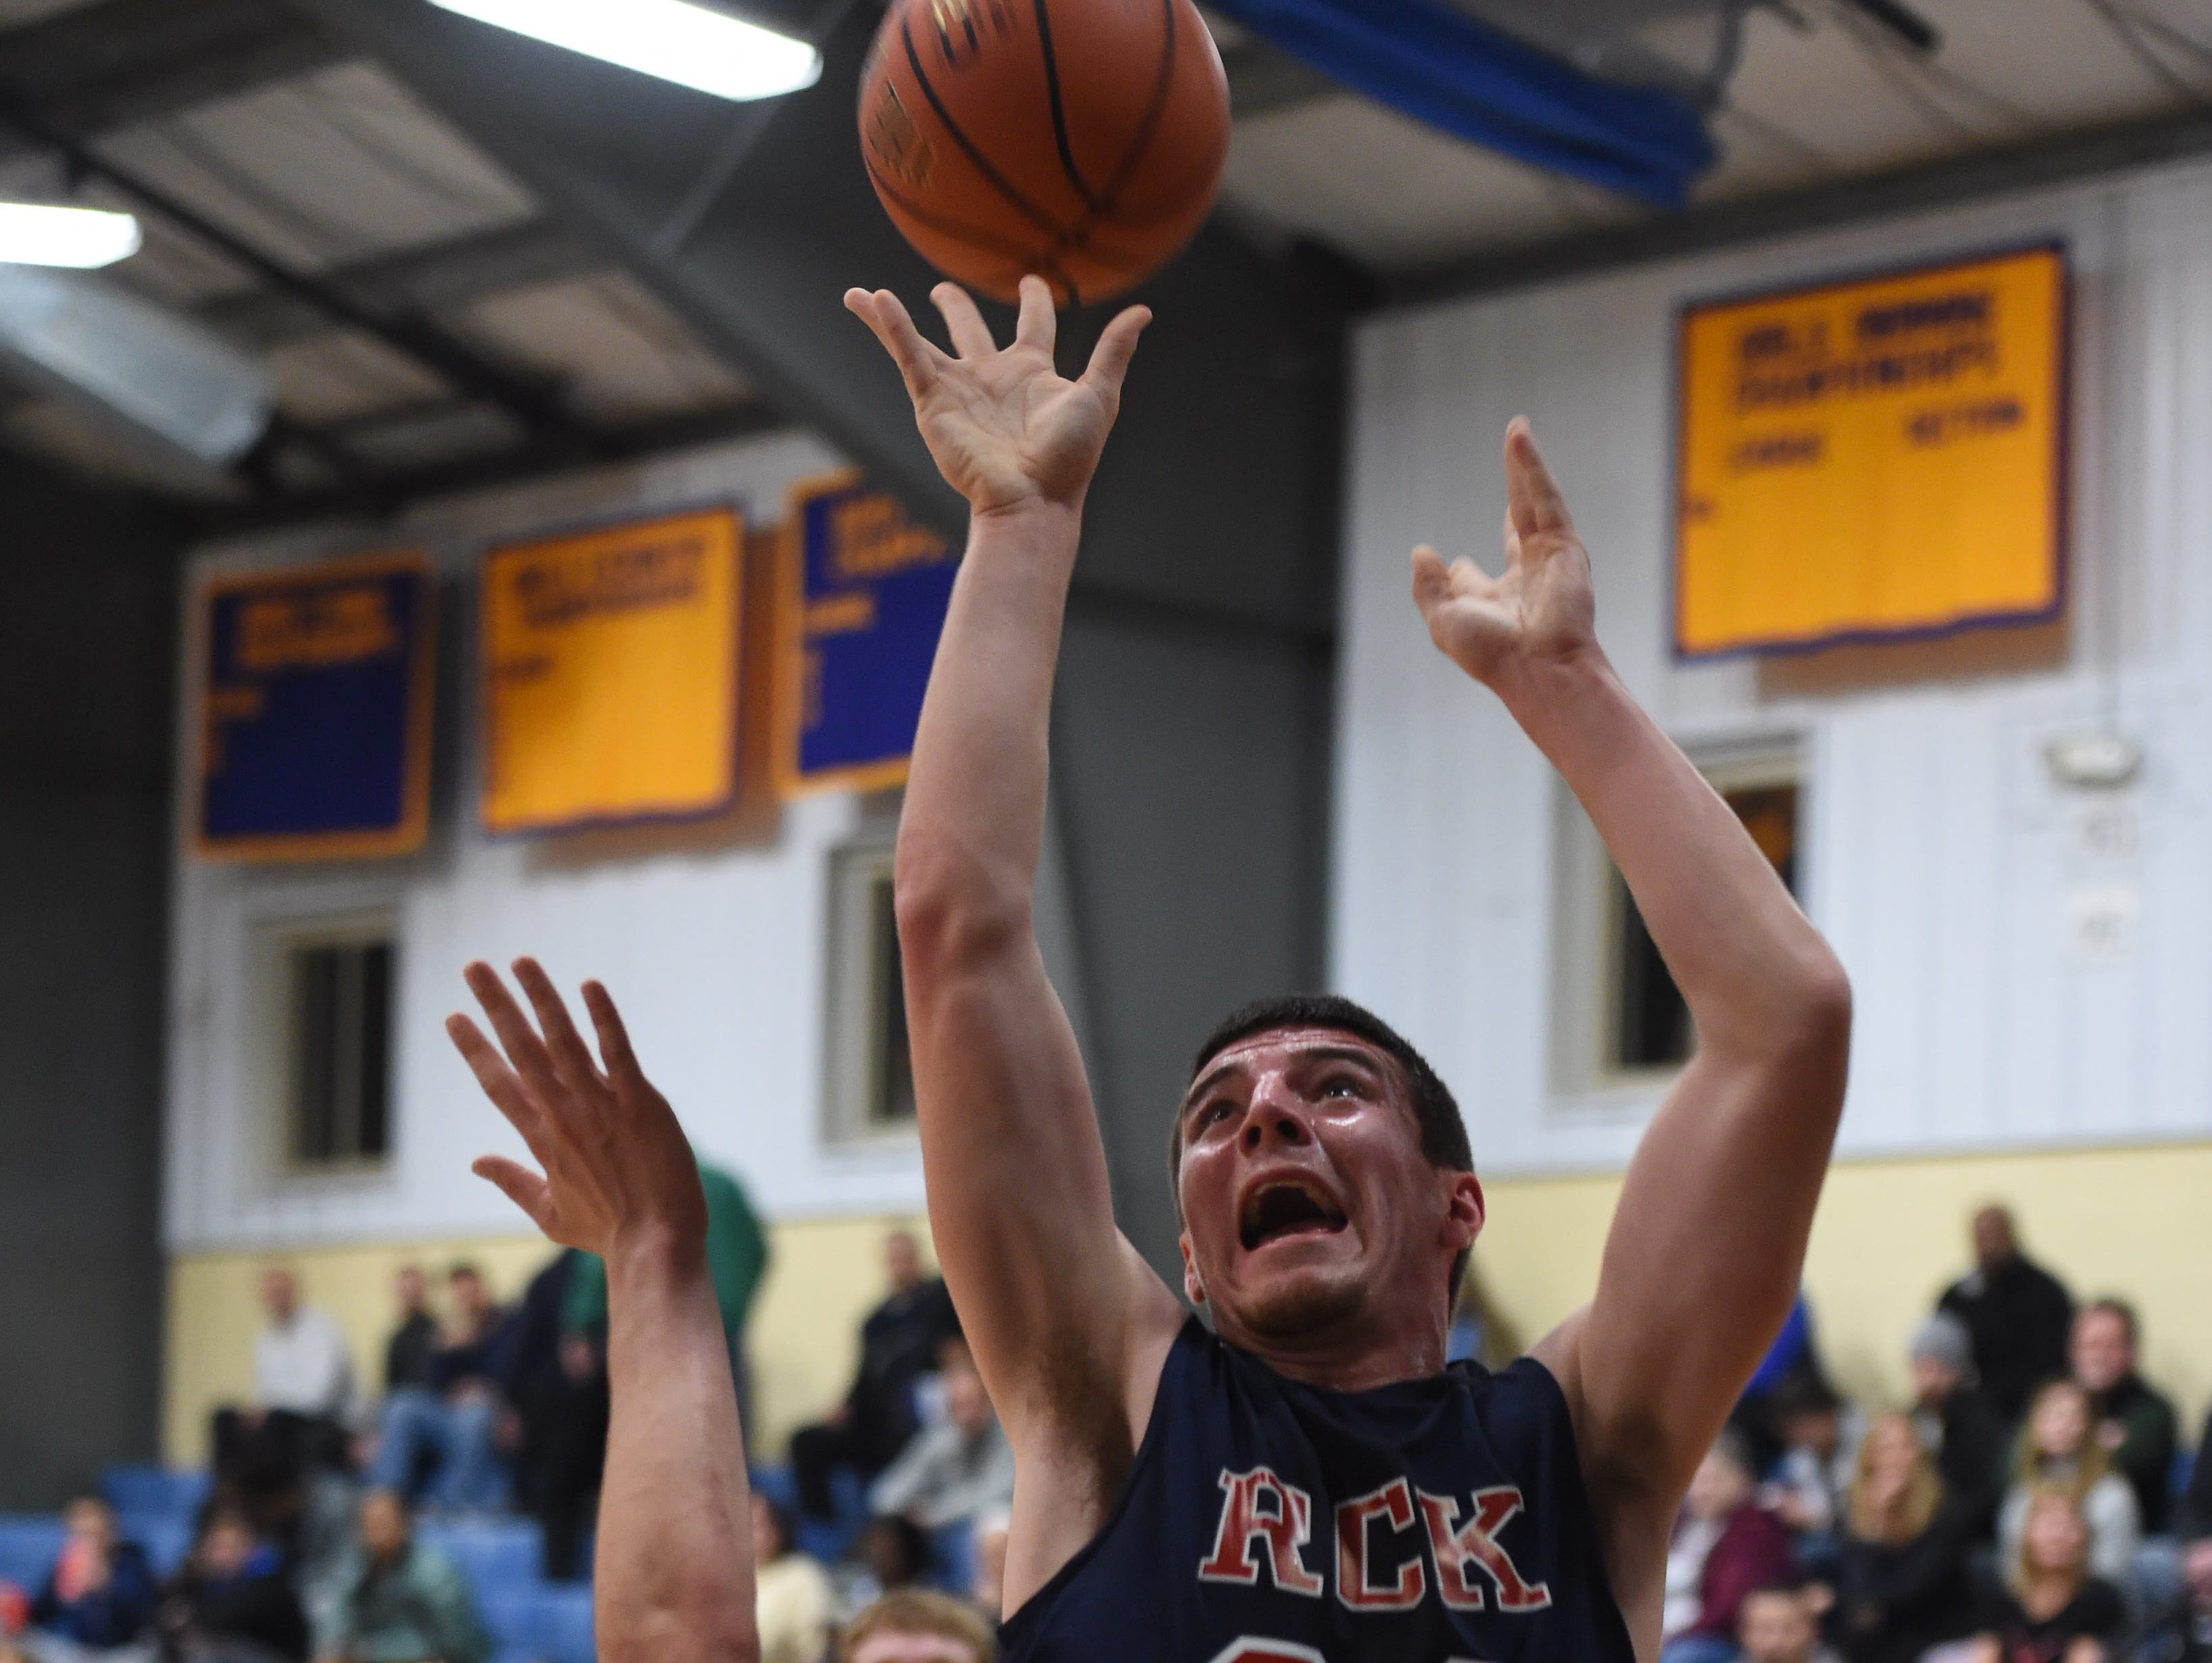 Ketcham's Tim Reilly shoots the ball over Arlington's Evan Greco during the Duane Davis Memorial Holiday Tournament in Poughkeepsie on Wednesday.